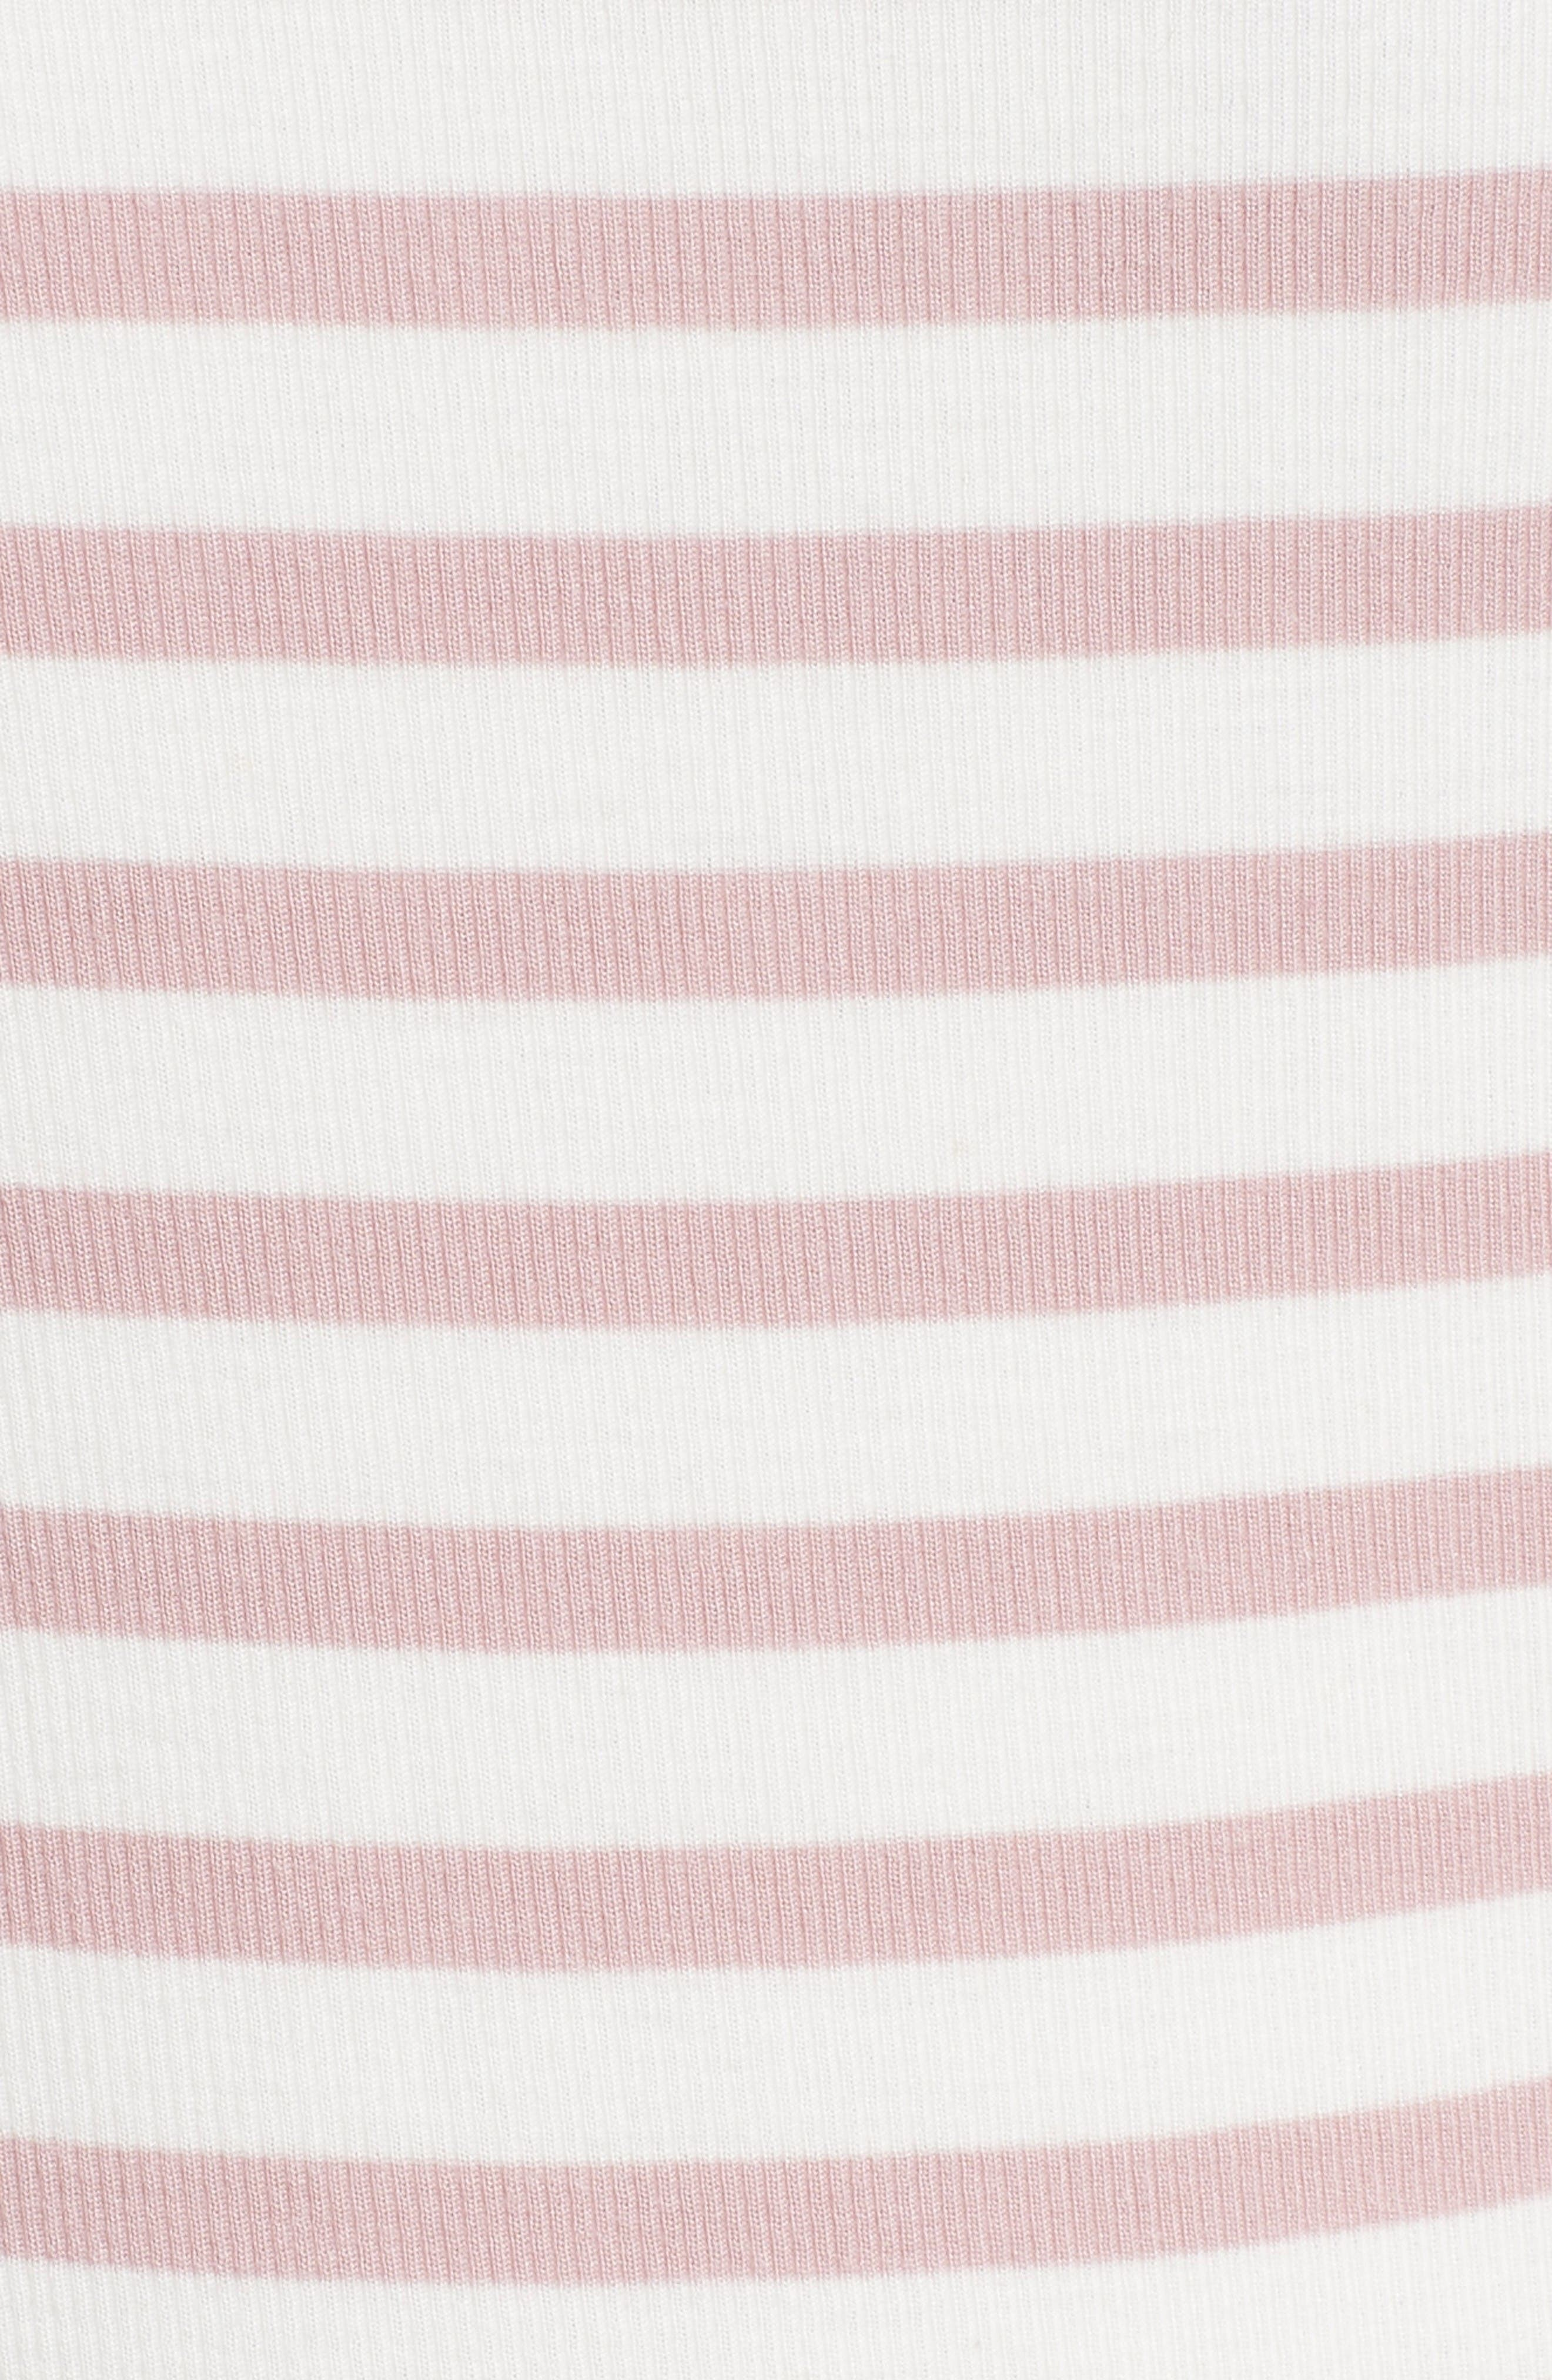 Off the Shoulder Rib Dress,                             Alternate thumbnail 6, color,                             Nutmeg/ Chalk Stripe